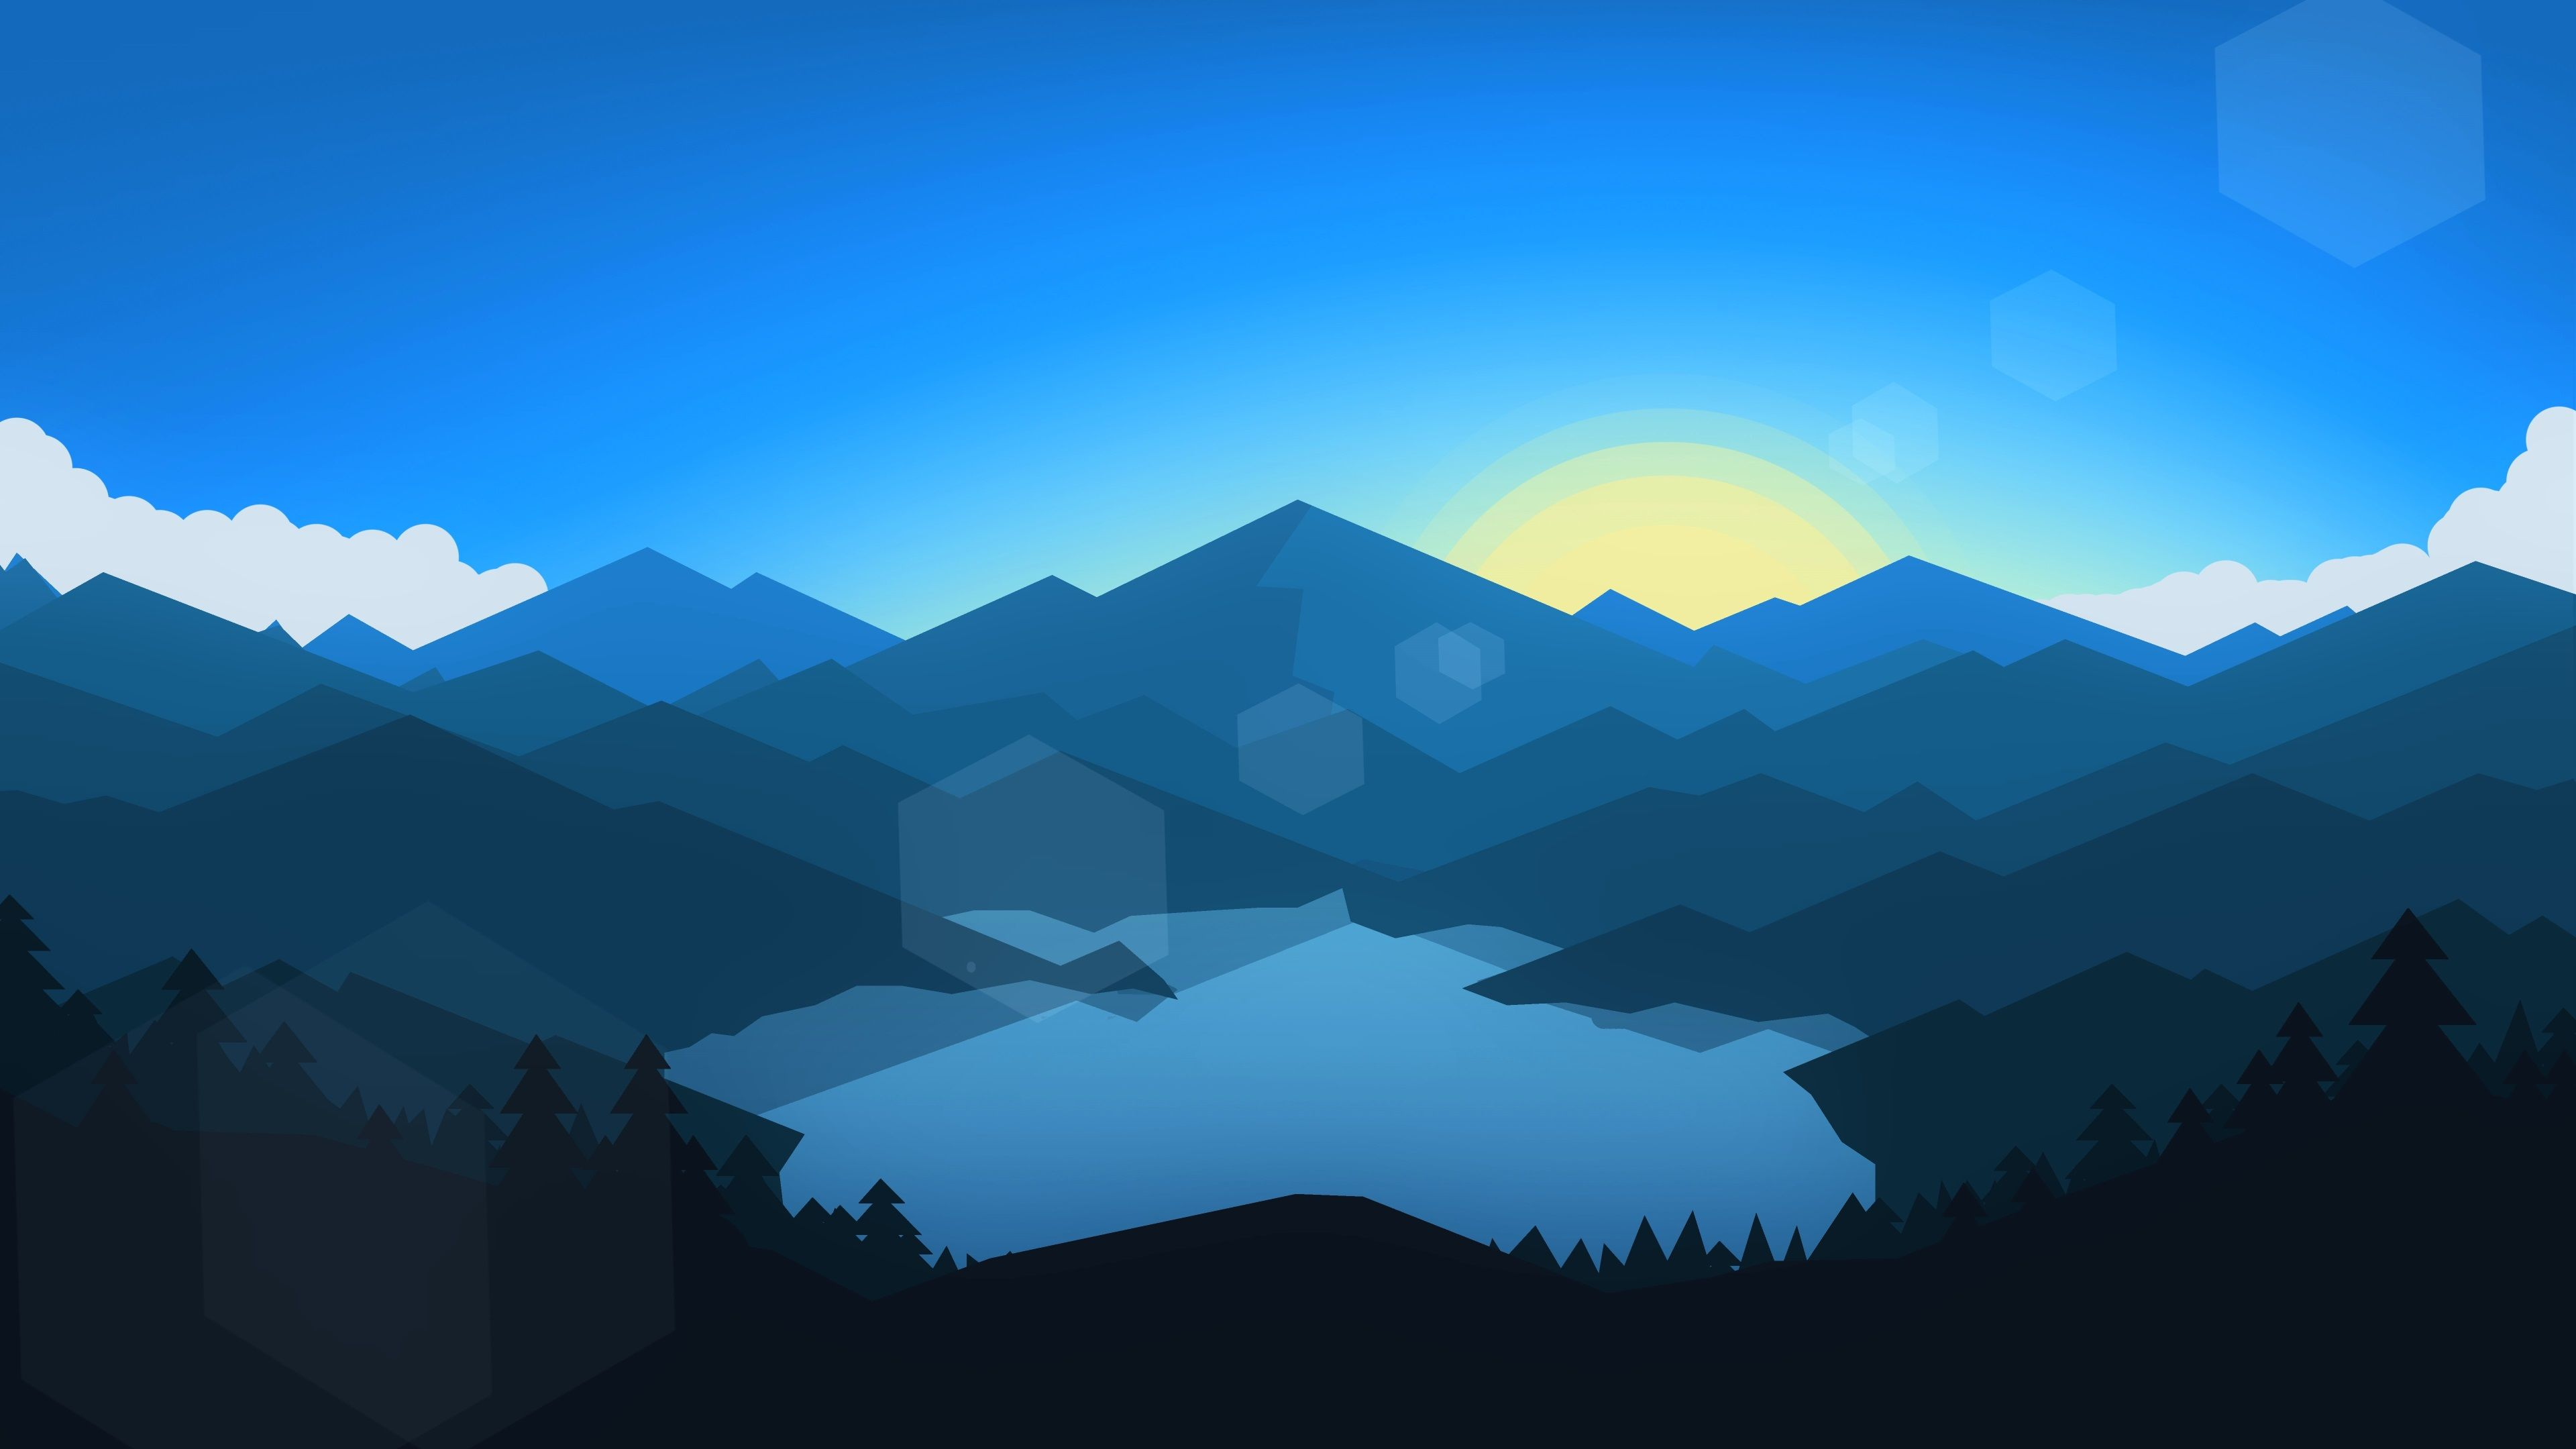 Flat 2d 4k wallpapers top free flat 2d 4k backgrounds - 2d nature wallpapers ...